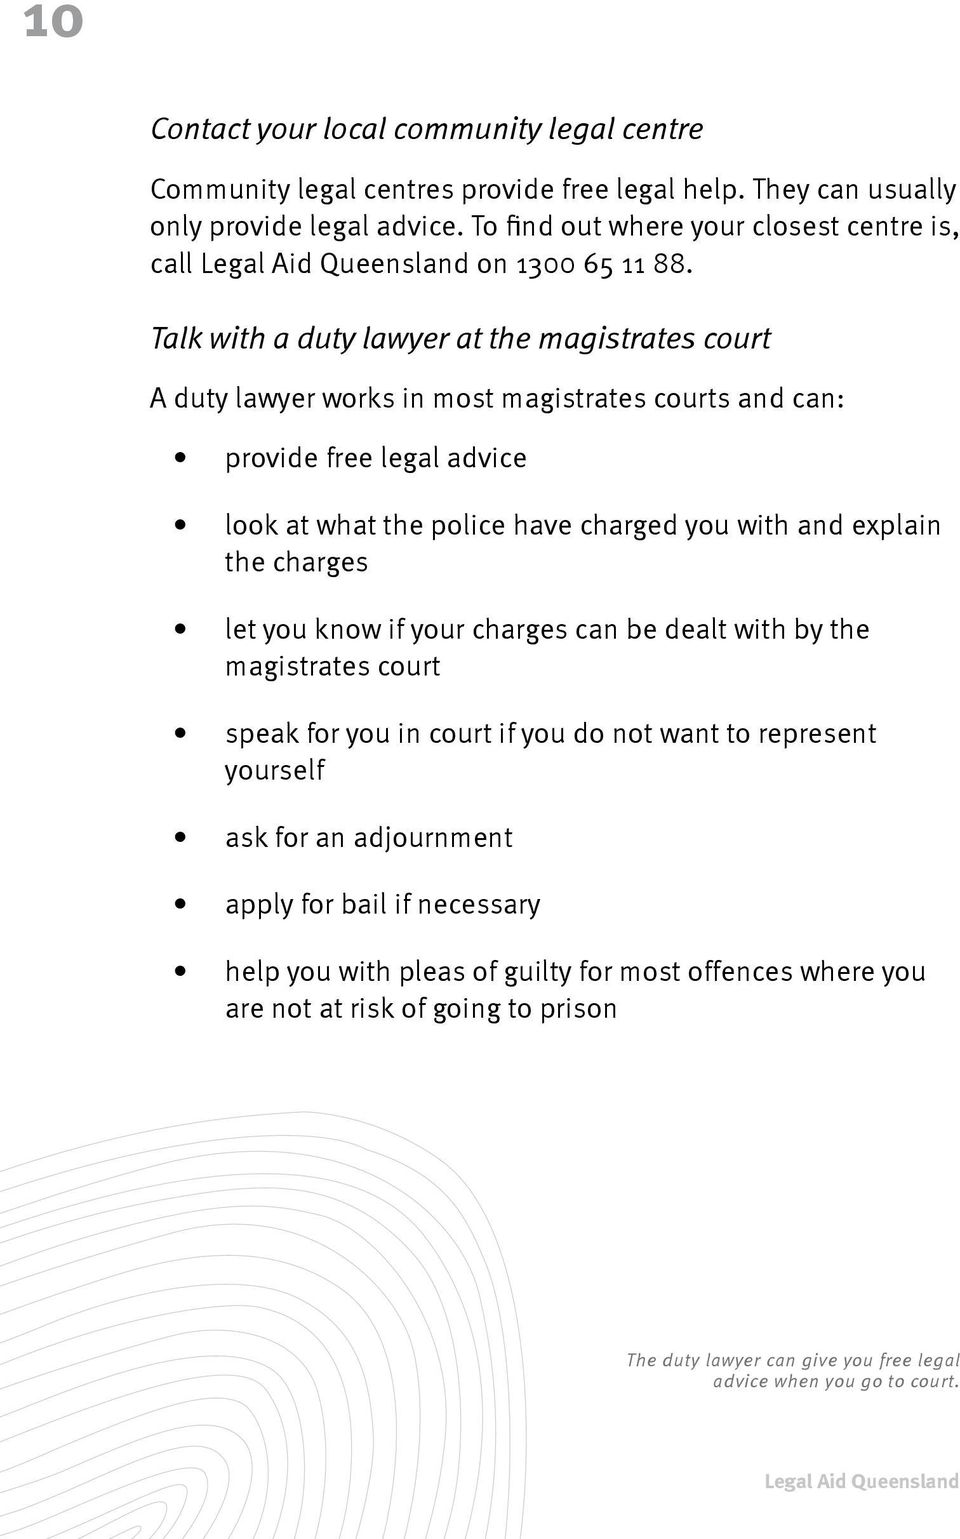 Talk with a duty lawyer at the magistrates court A duty lawyer works in most magistrates courts and can: provide free legal advice look at what the police have charged you with and explain the